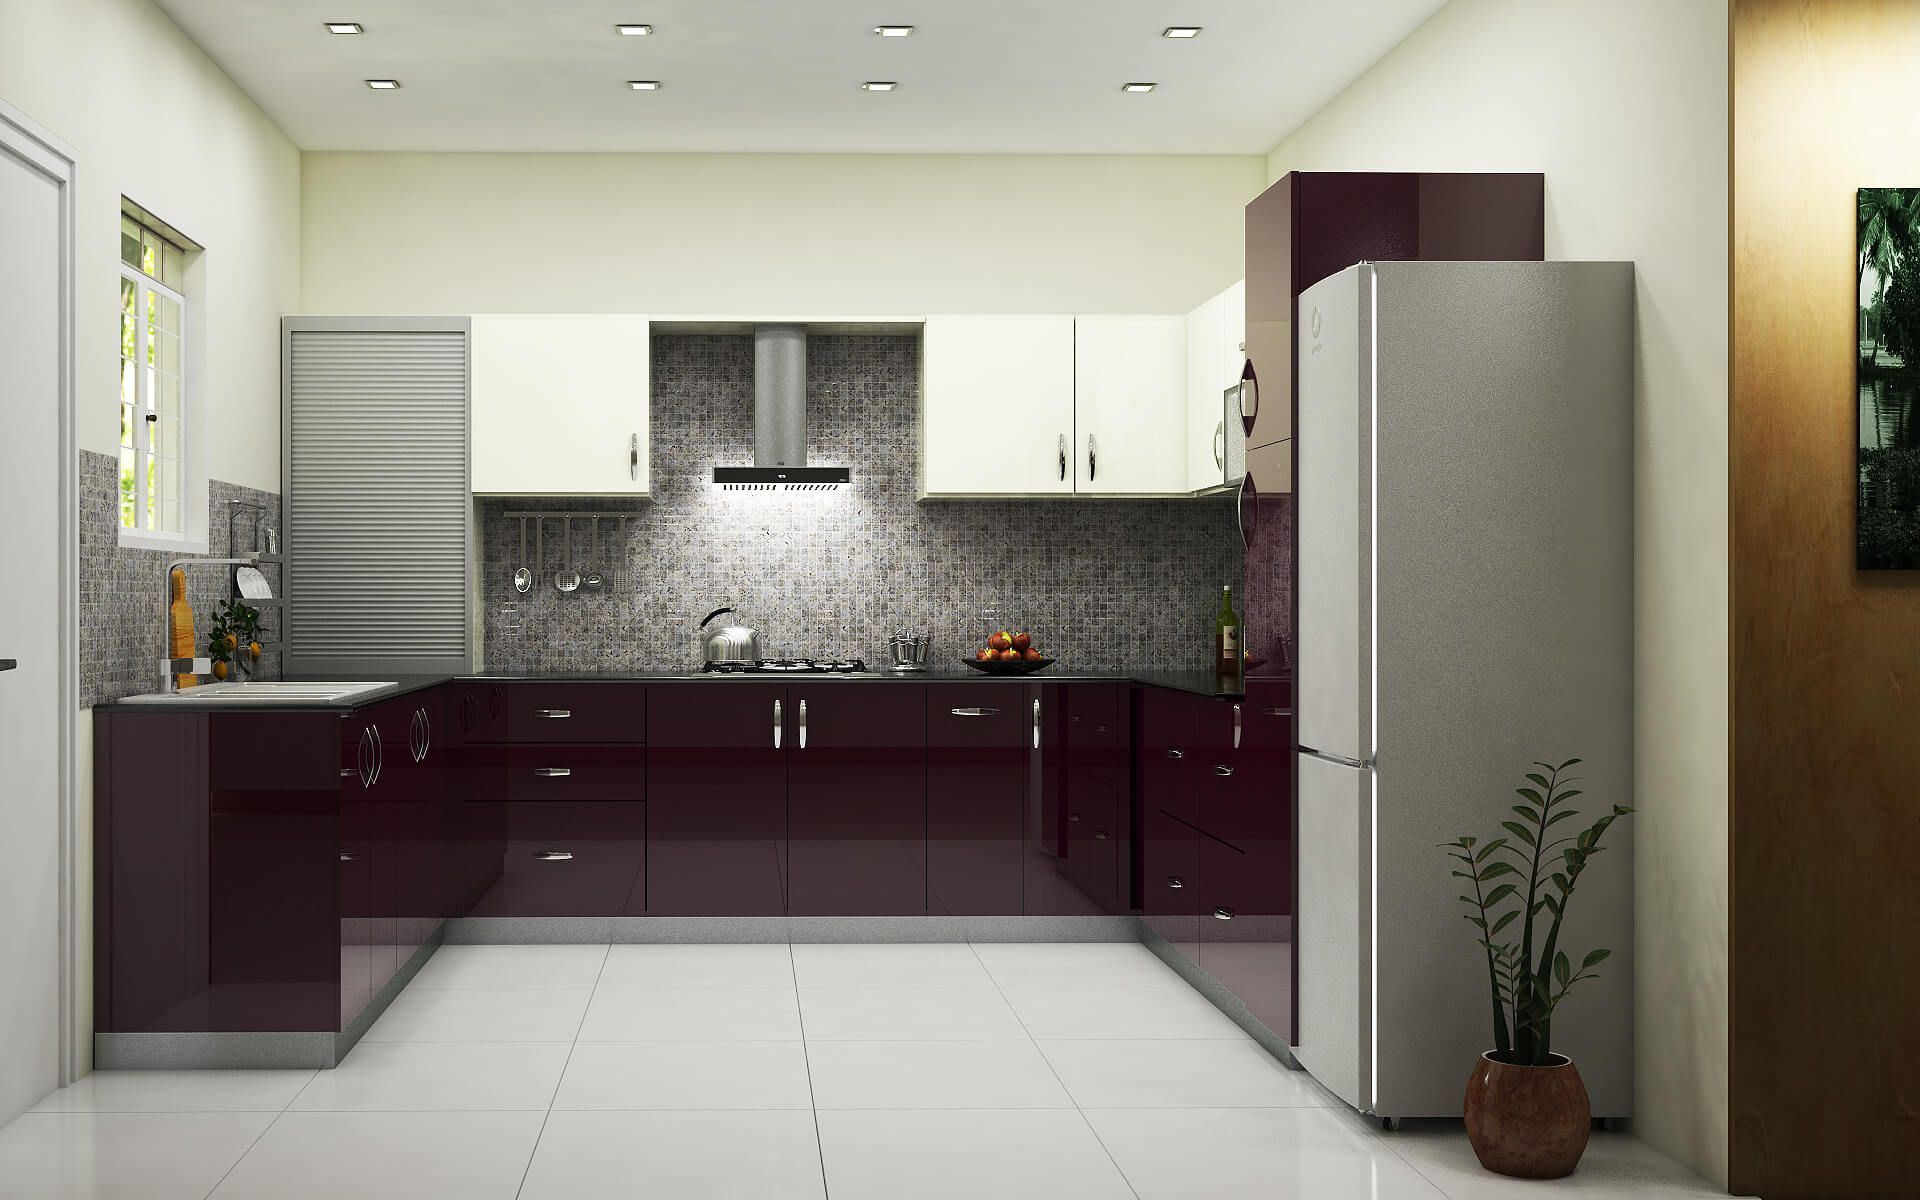 55 Modular Kitchen Design Ideas For Indian Homes Kitchen Modular L Shaped Modular Kitchen Kitchen Design Pictures